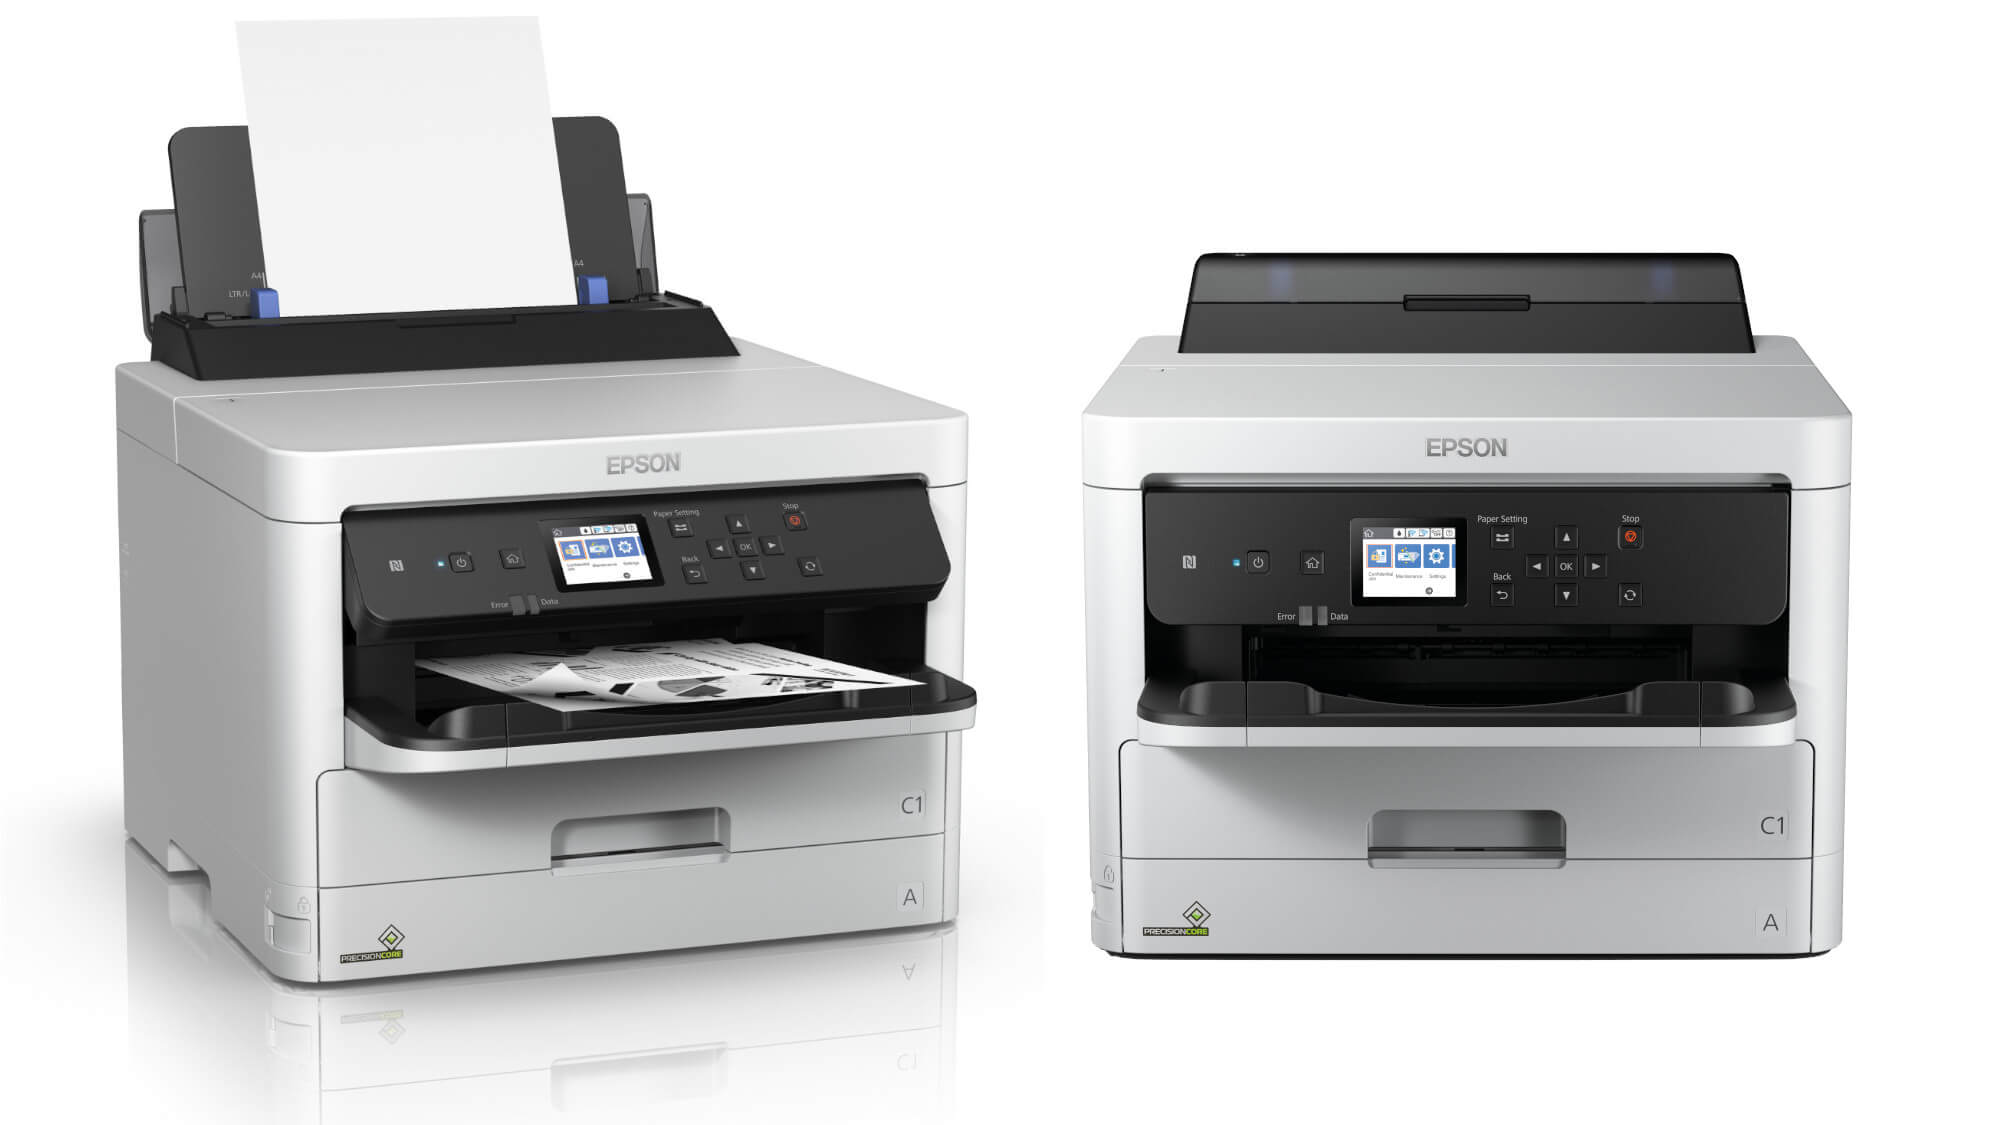 Epson A4 Colour Printer Other models